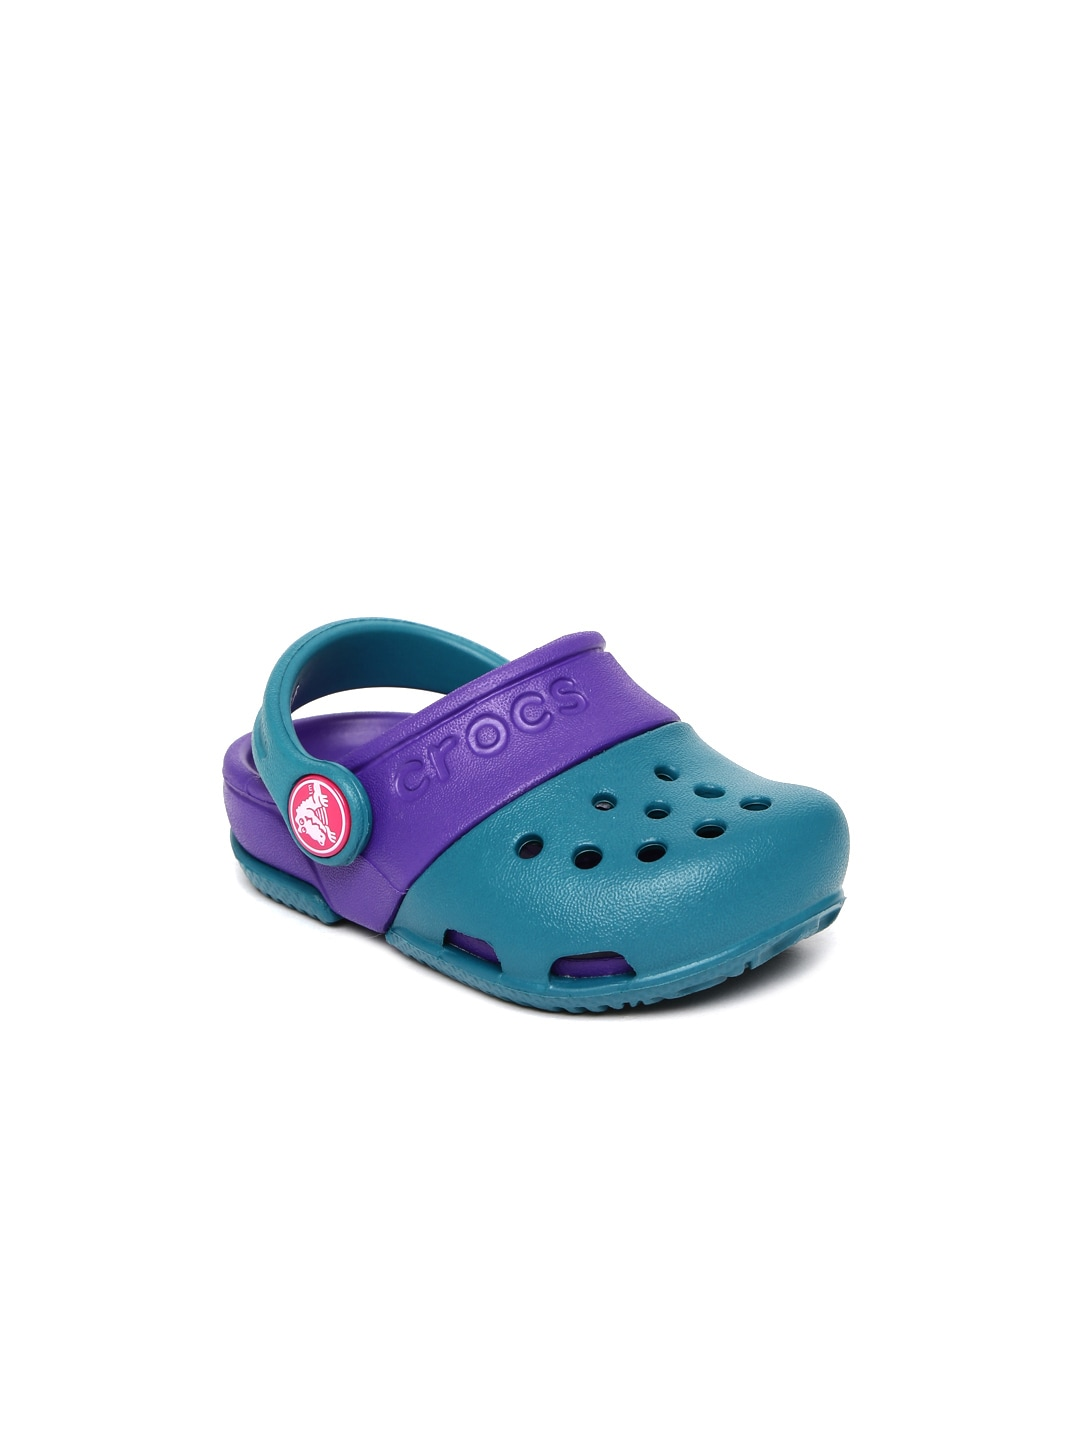 Crocs Kids Green and Purple Colourblocked Electro II Clogs